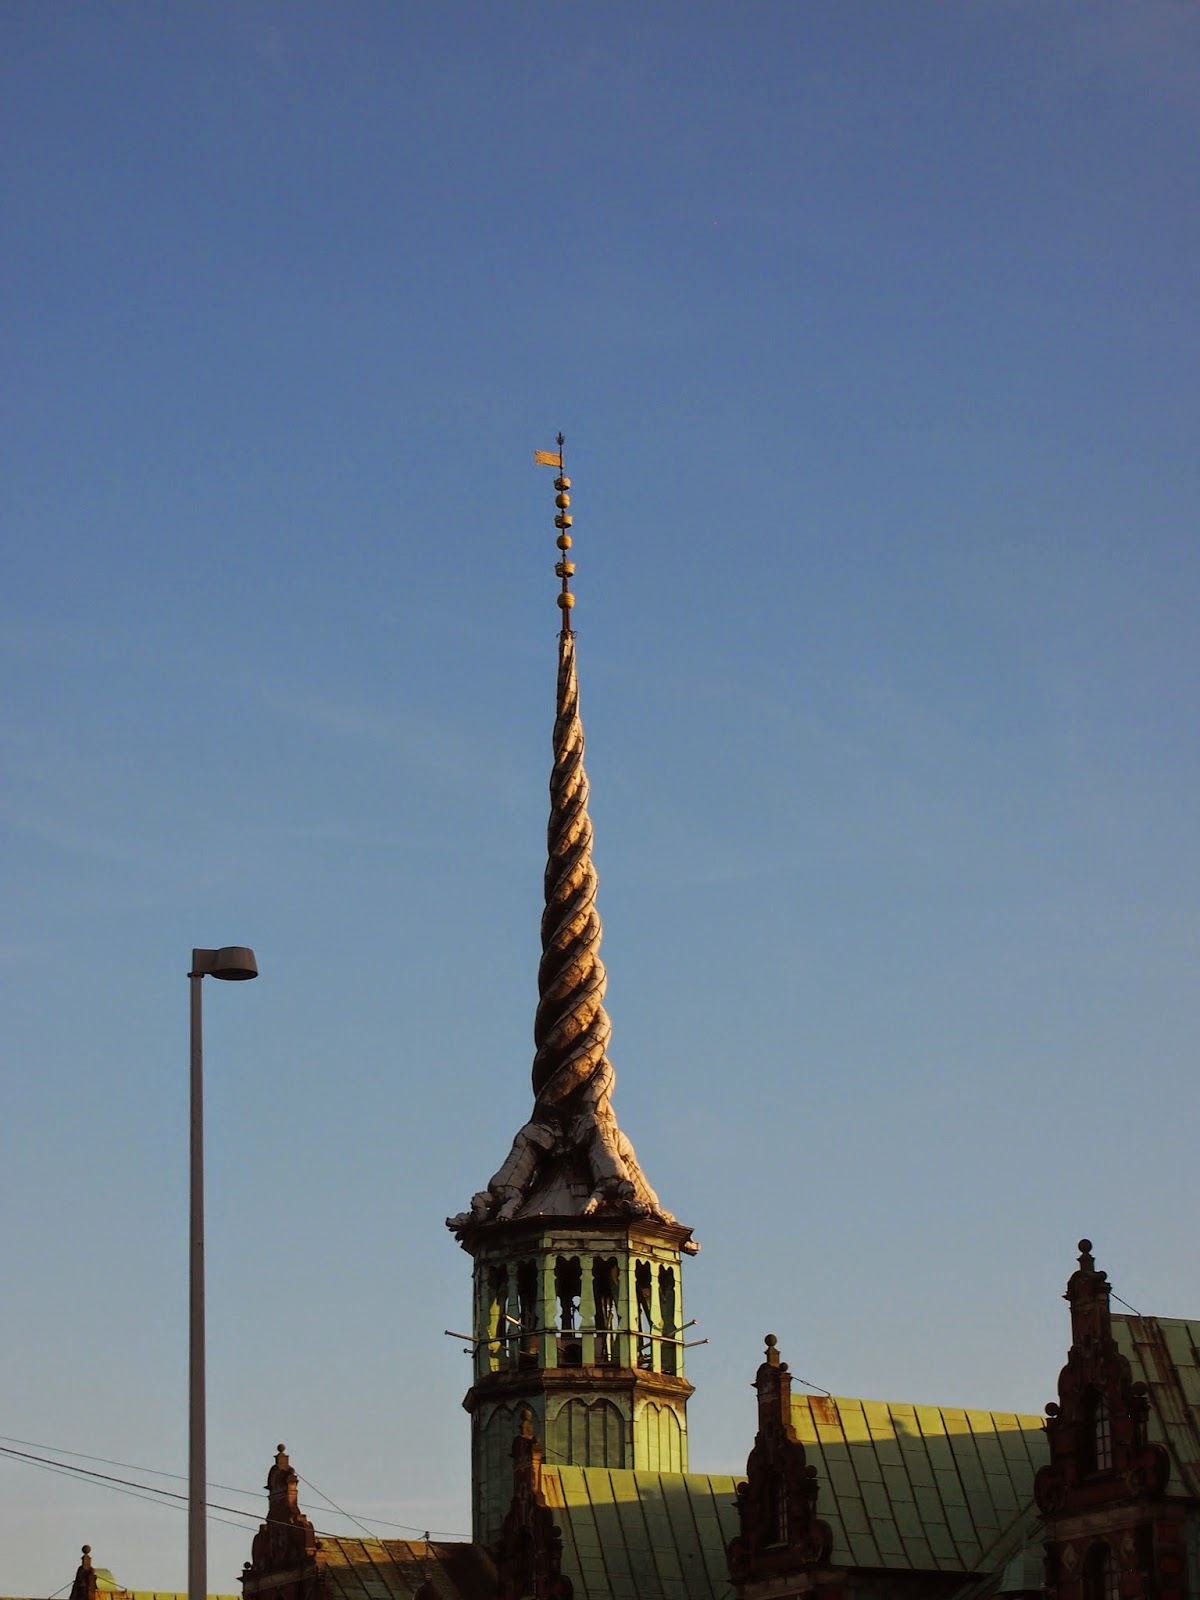 the dragon spire on the old stock exchange in copenhagen